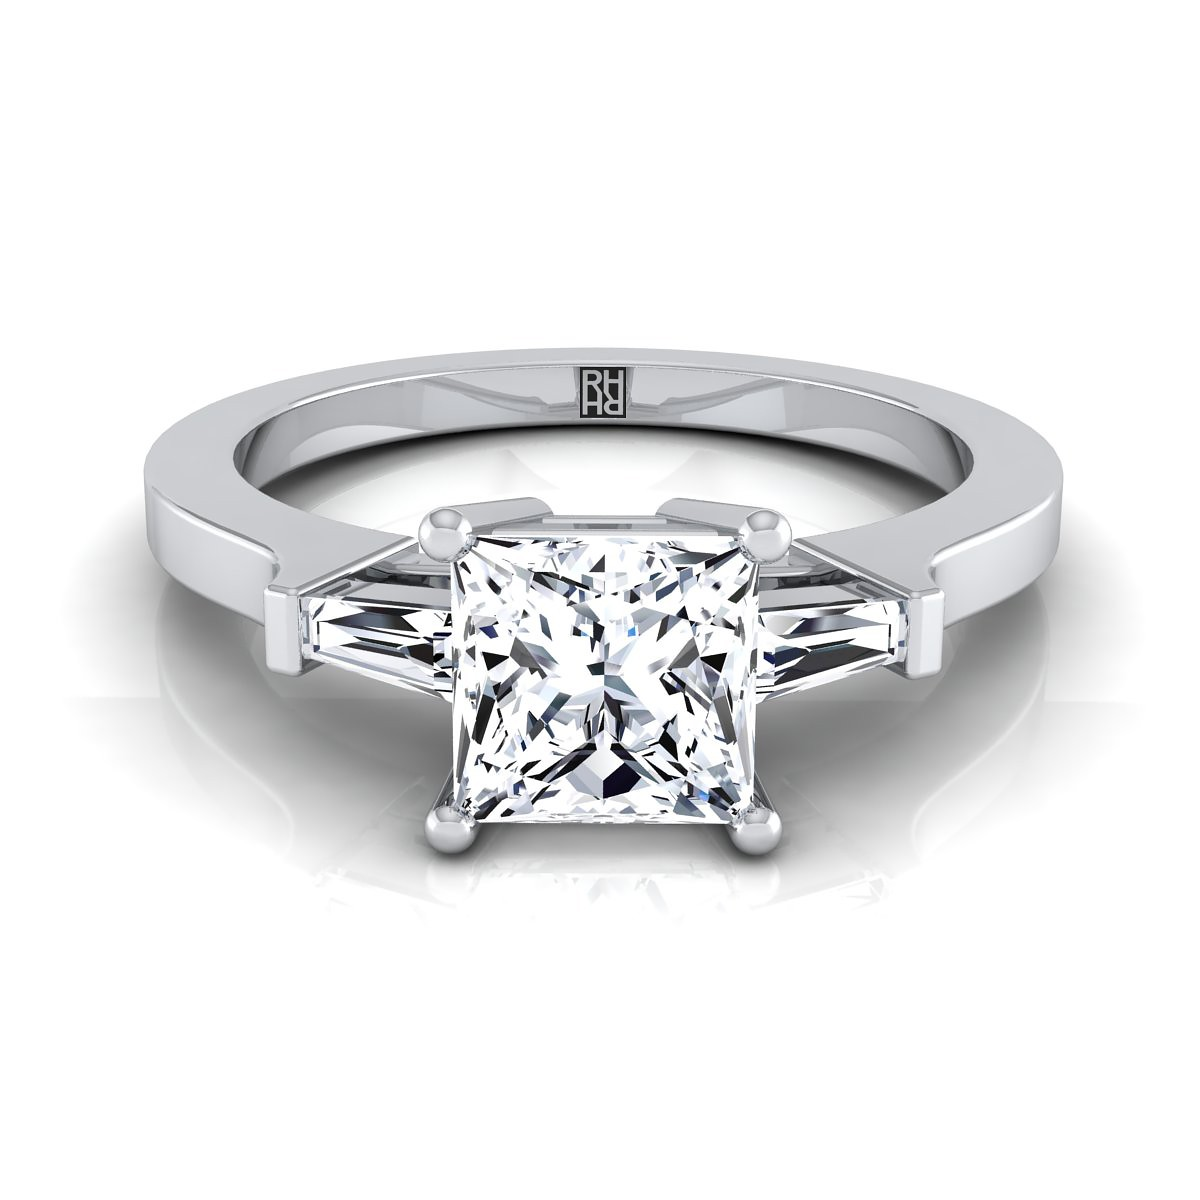 diamond engagement ring with princess cut center and tapered baguette side stones in 14k white gold 14 cttw - White Gold Princess Cut Wedding Rings